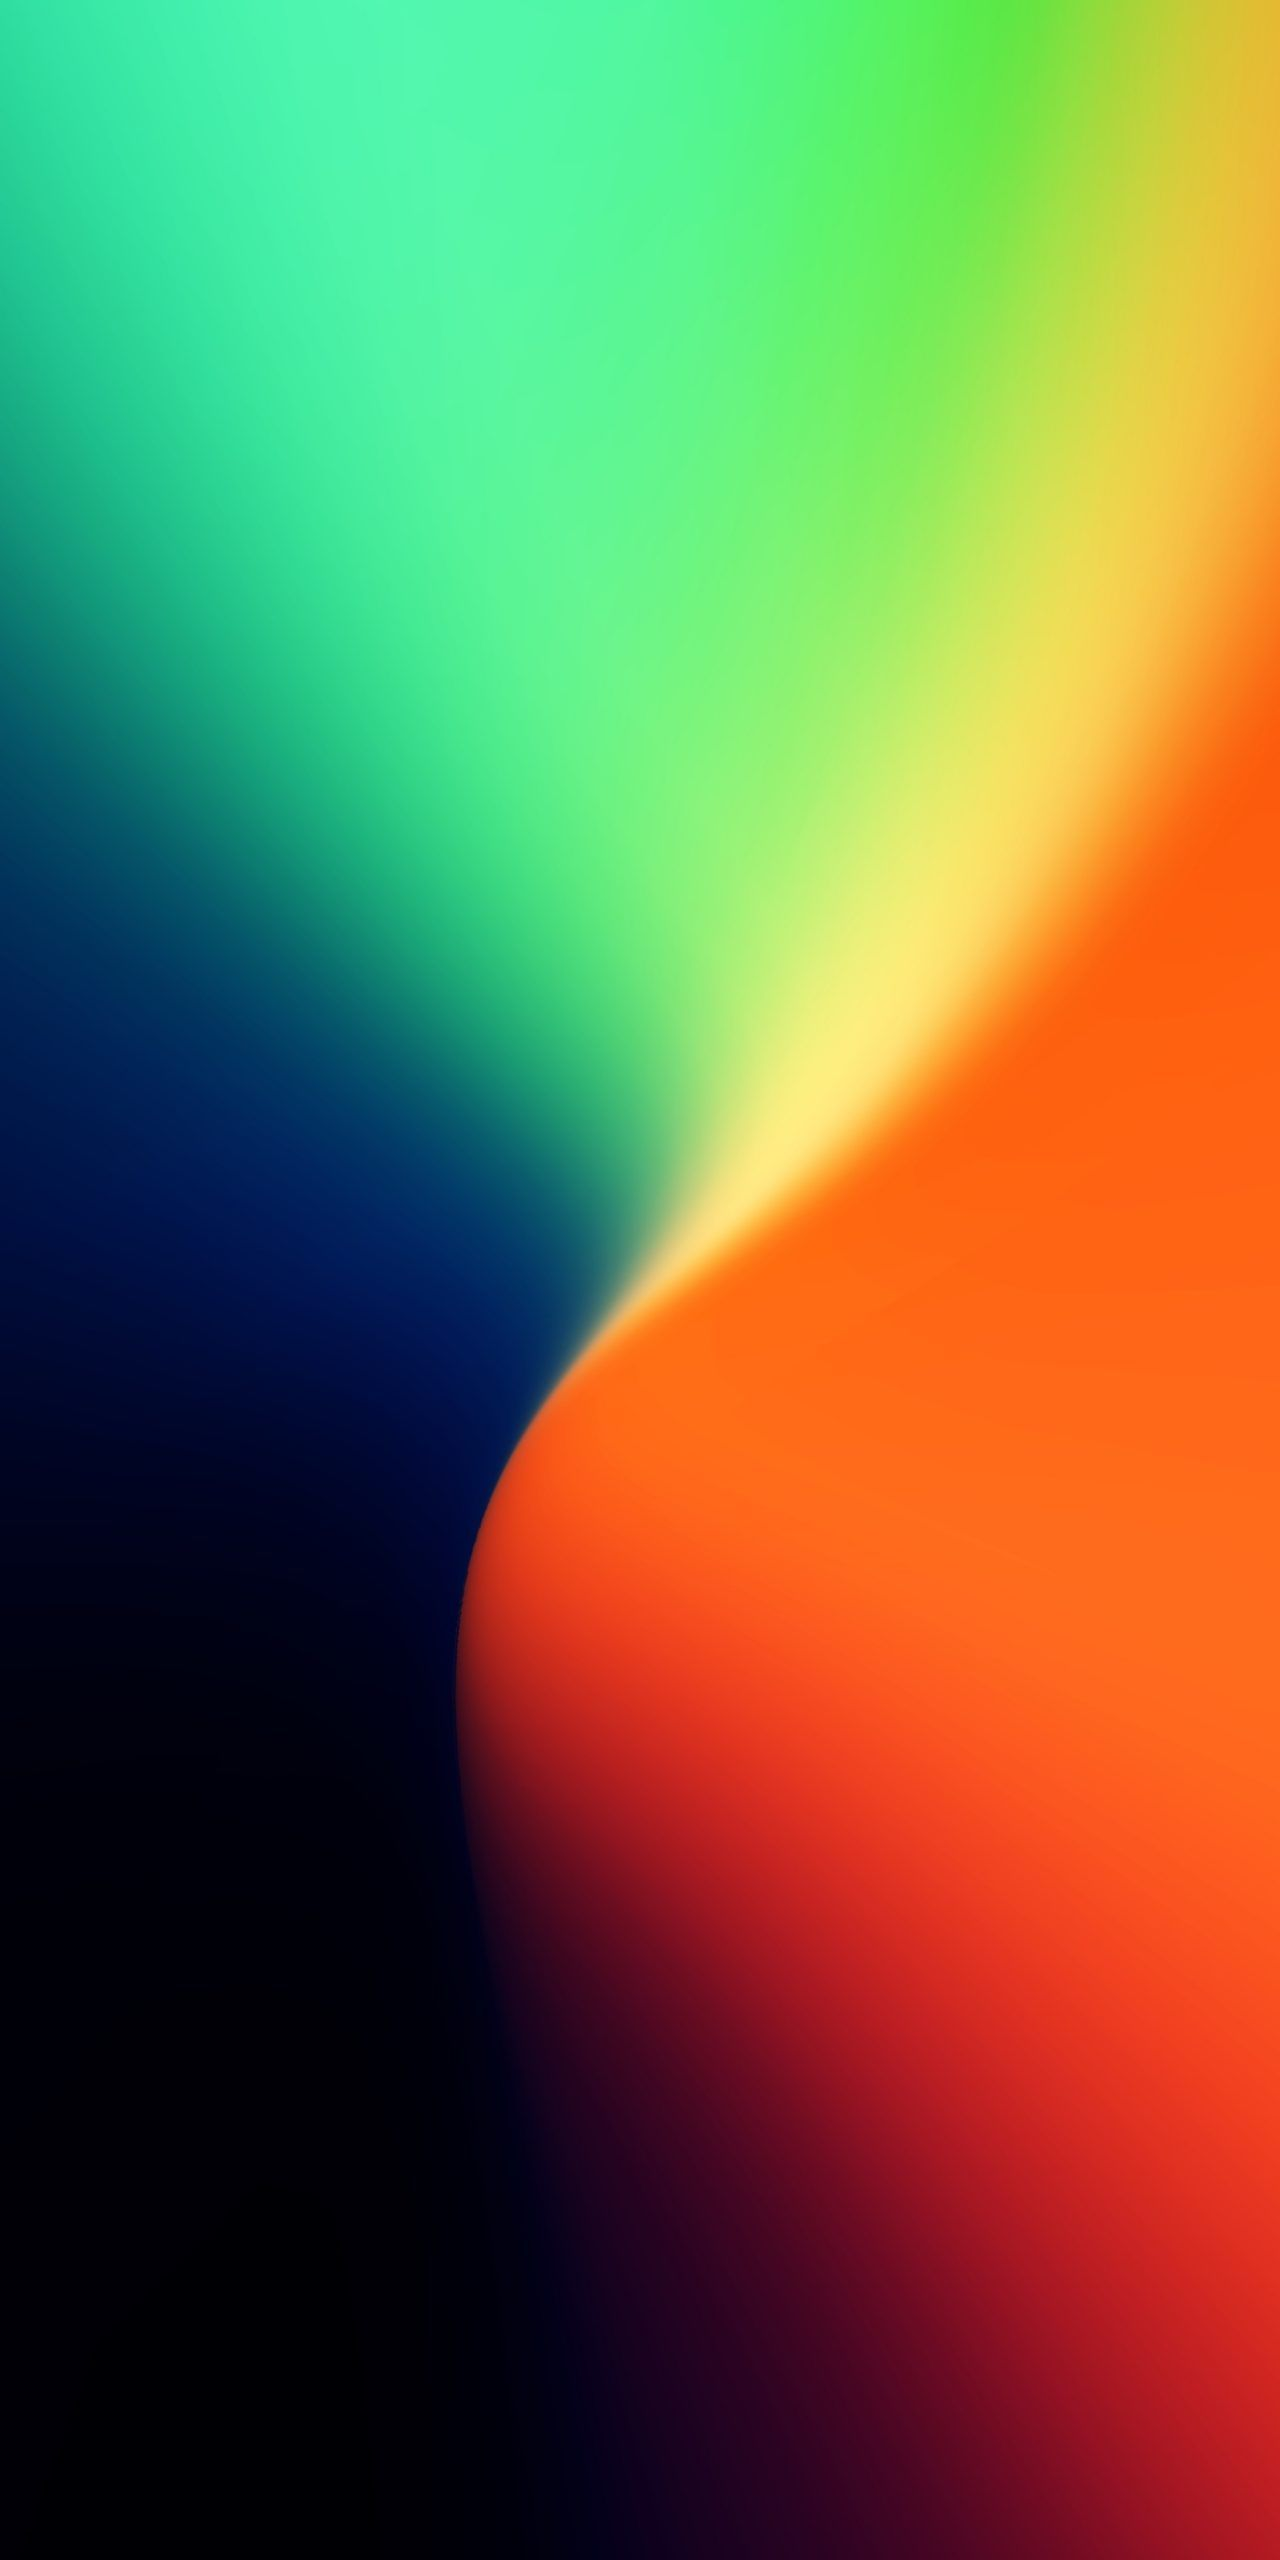 Gradient Blue Orange Green And Yellow By Ongliong11 Color Wallpaper Iphone Colourful Wallpaper Iphone Iphone Wallpaper Gradient